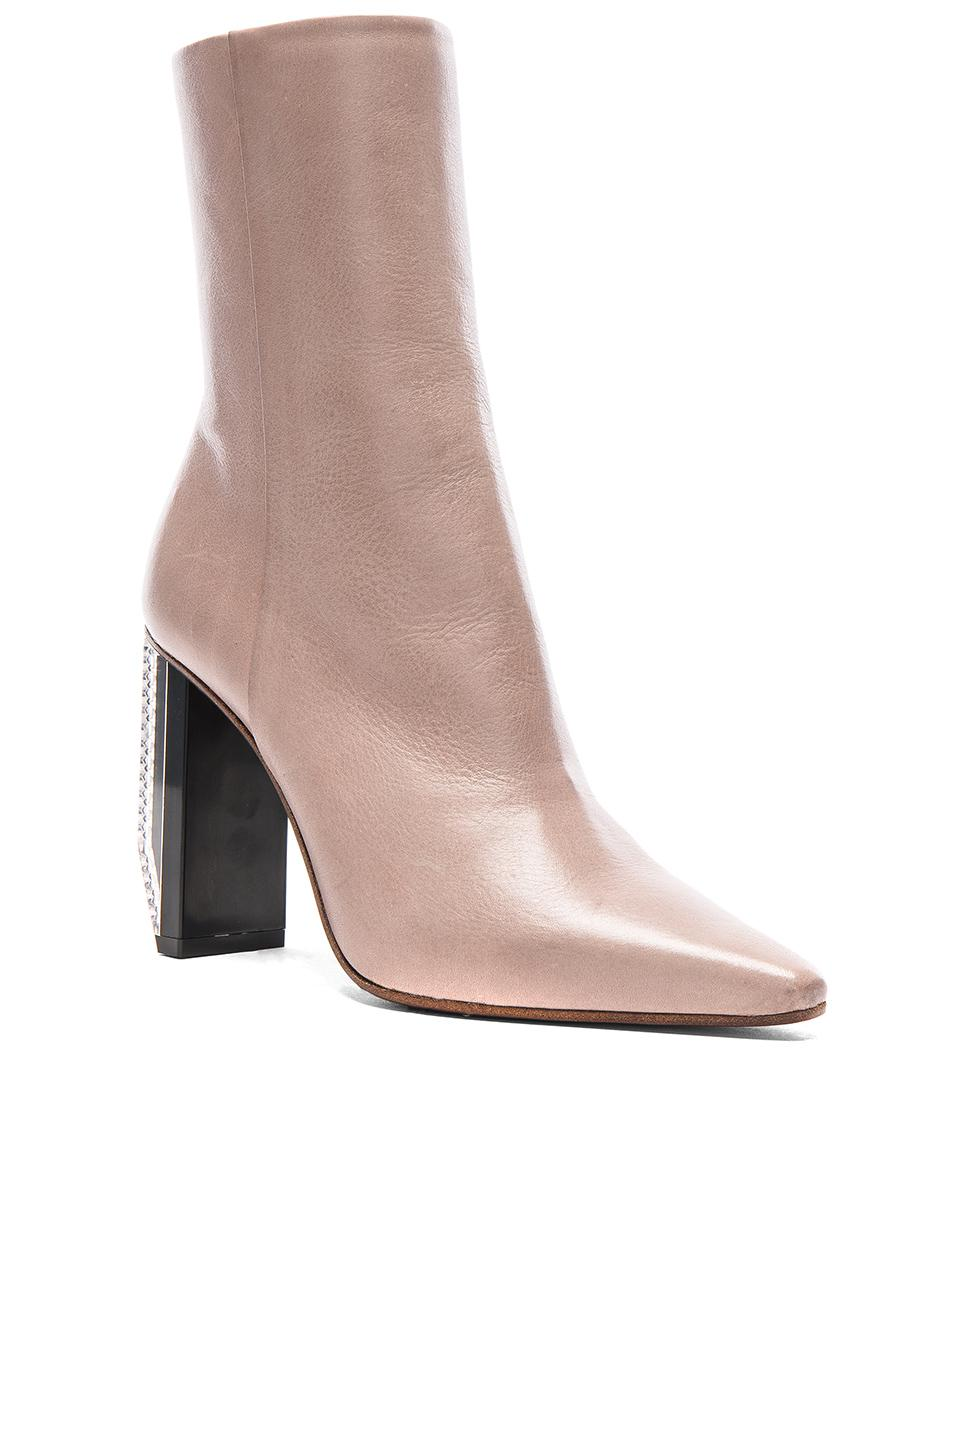 Vetements Reflector Heel Leather Ankle Boots in Neutrals. KBZlcjGD